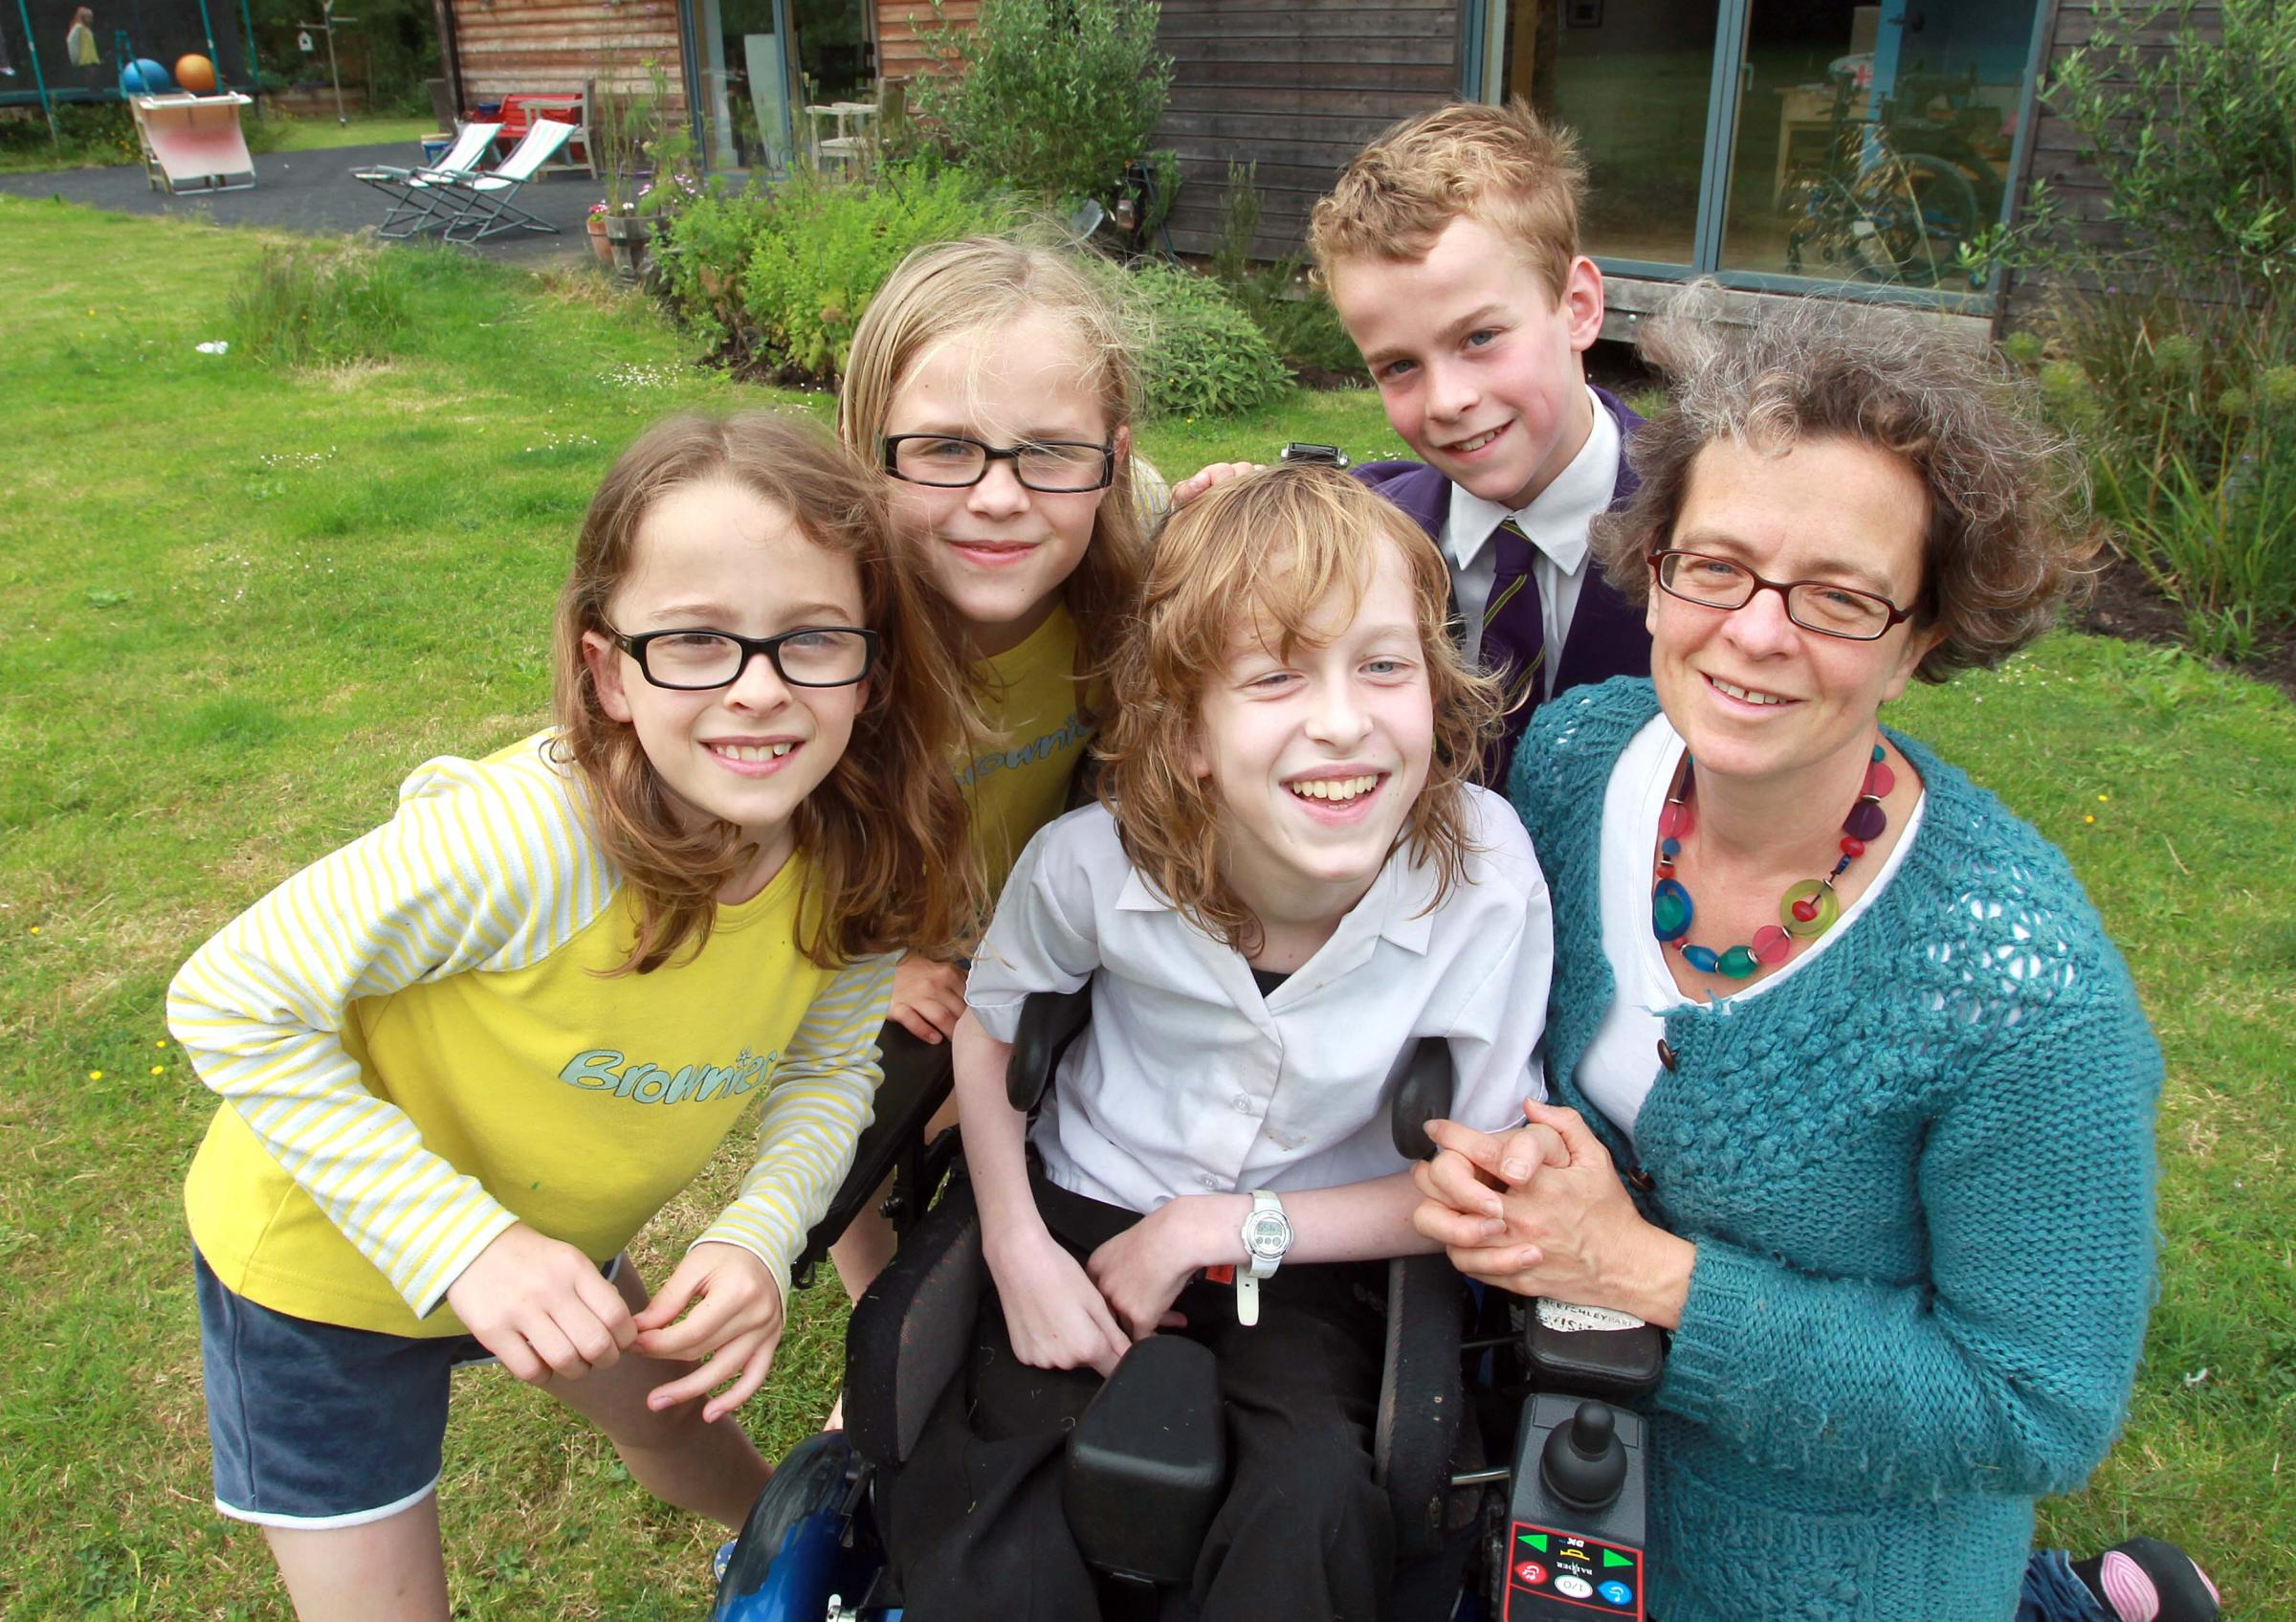 Philippa with her sisters Samantha (front) and Georgina, brother Matthew and mum Caroline